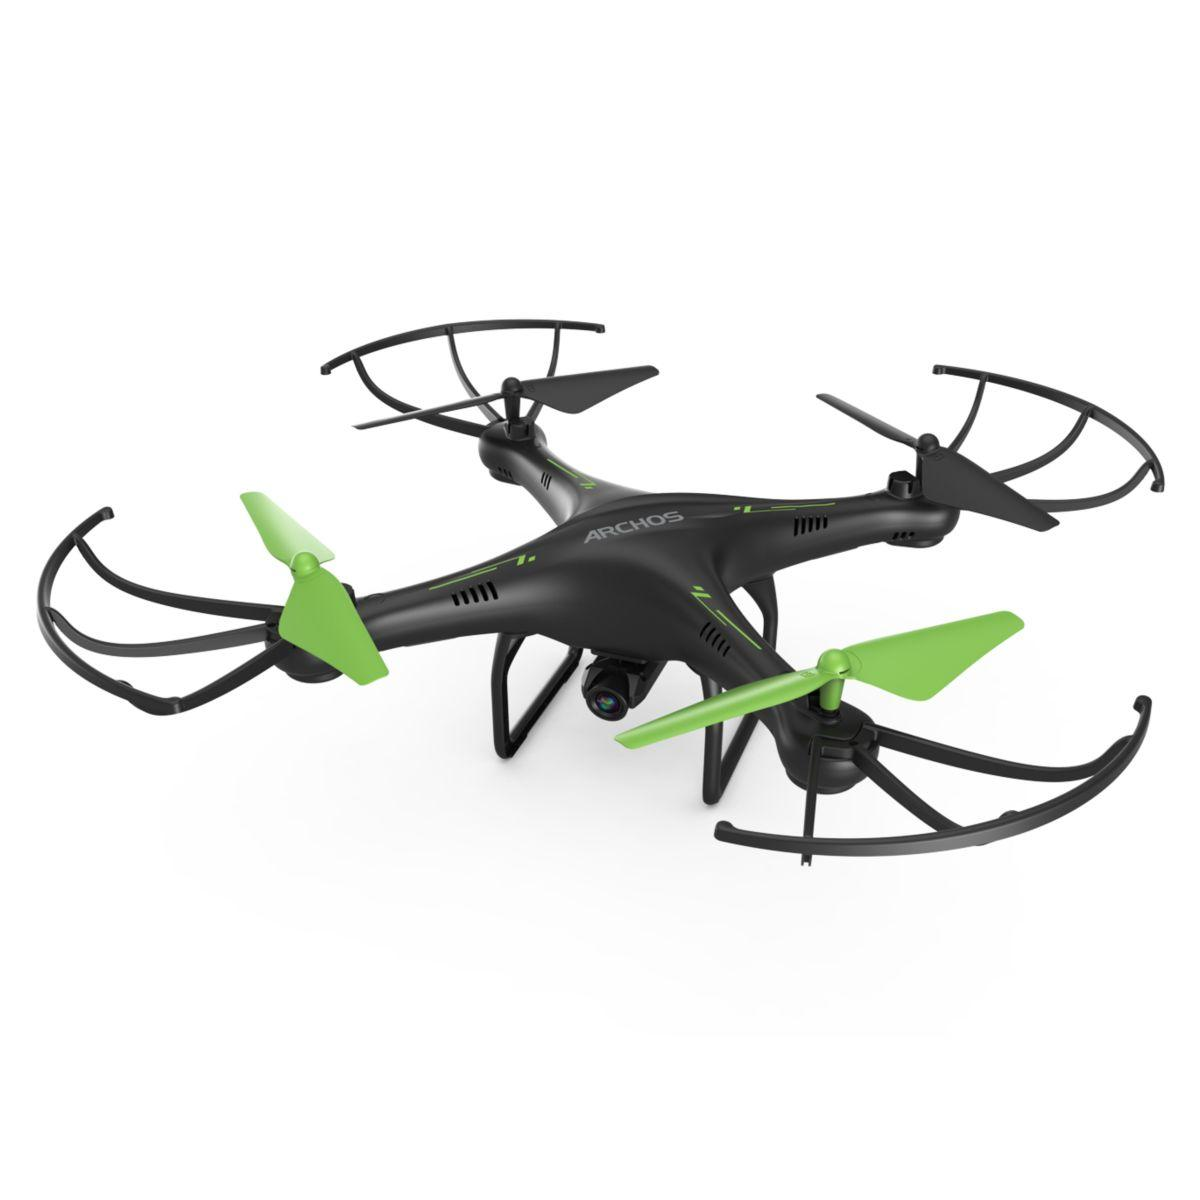 Drone archos camera hd (photo)